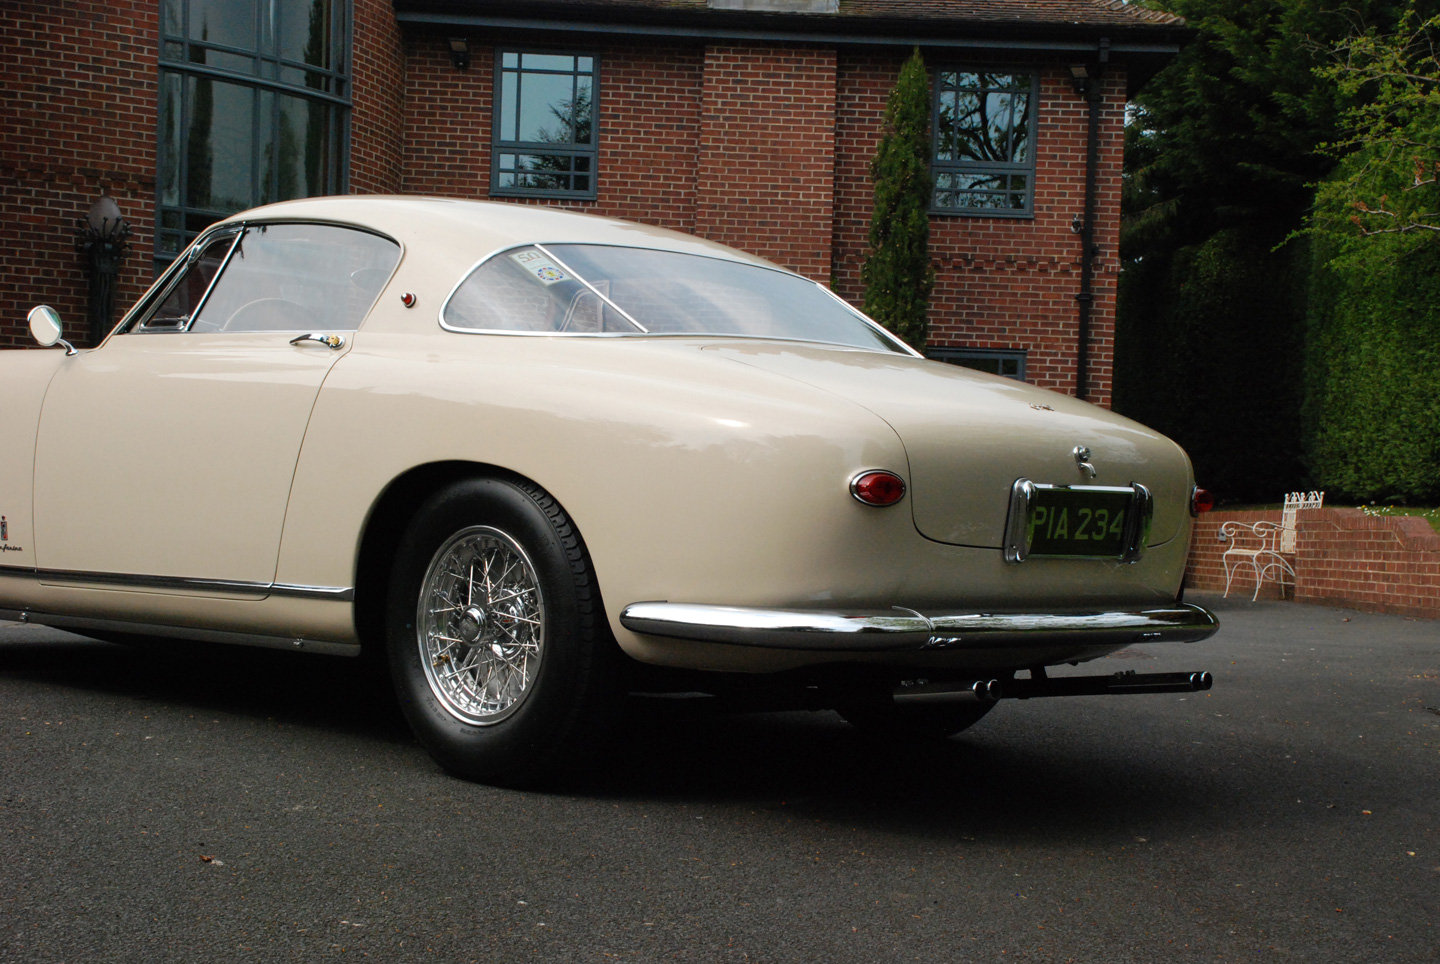 1954 Ferrai 250 Europa Pininfarina steel body 3 window coupe For Sale (picture 2 of 6)